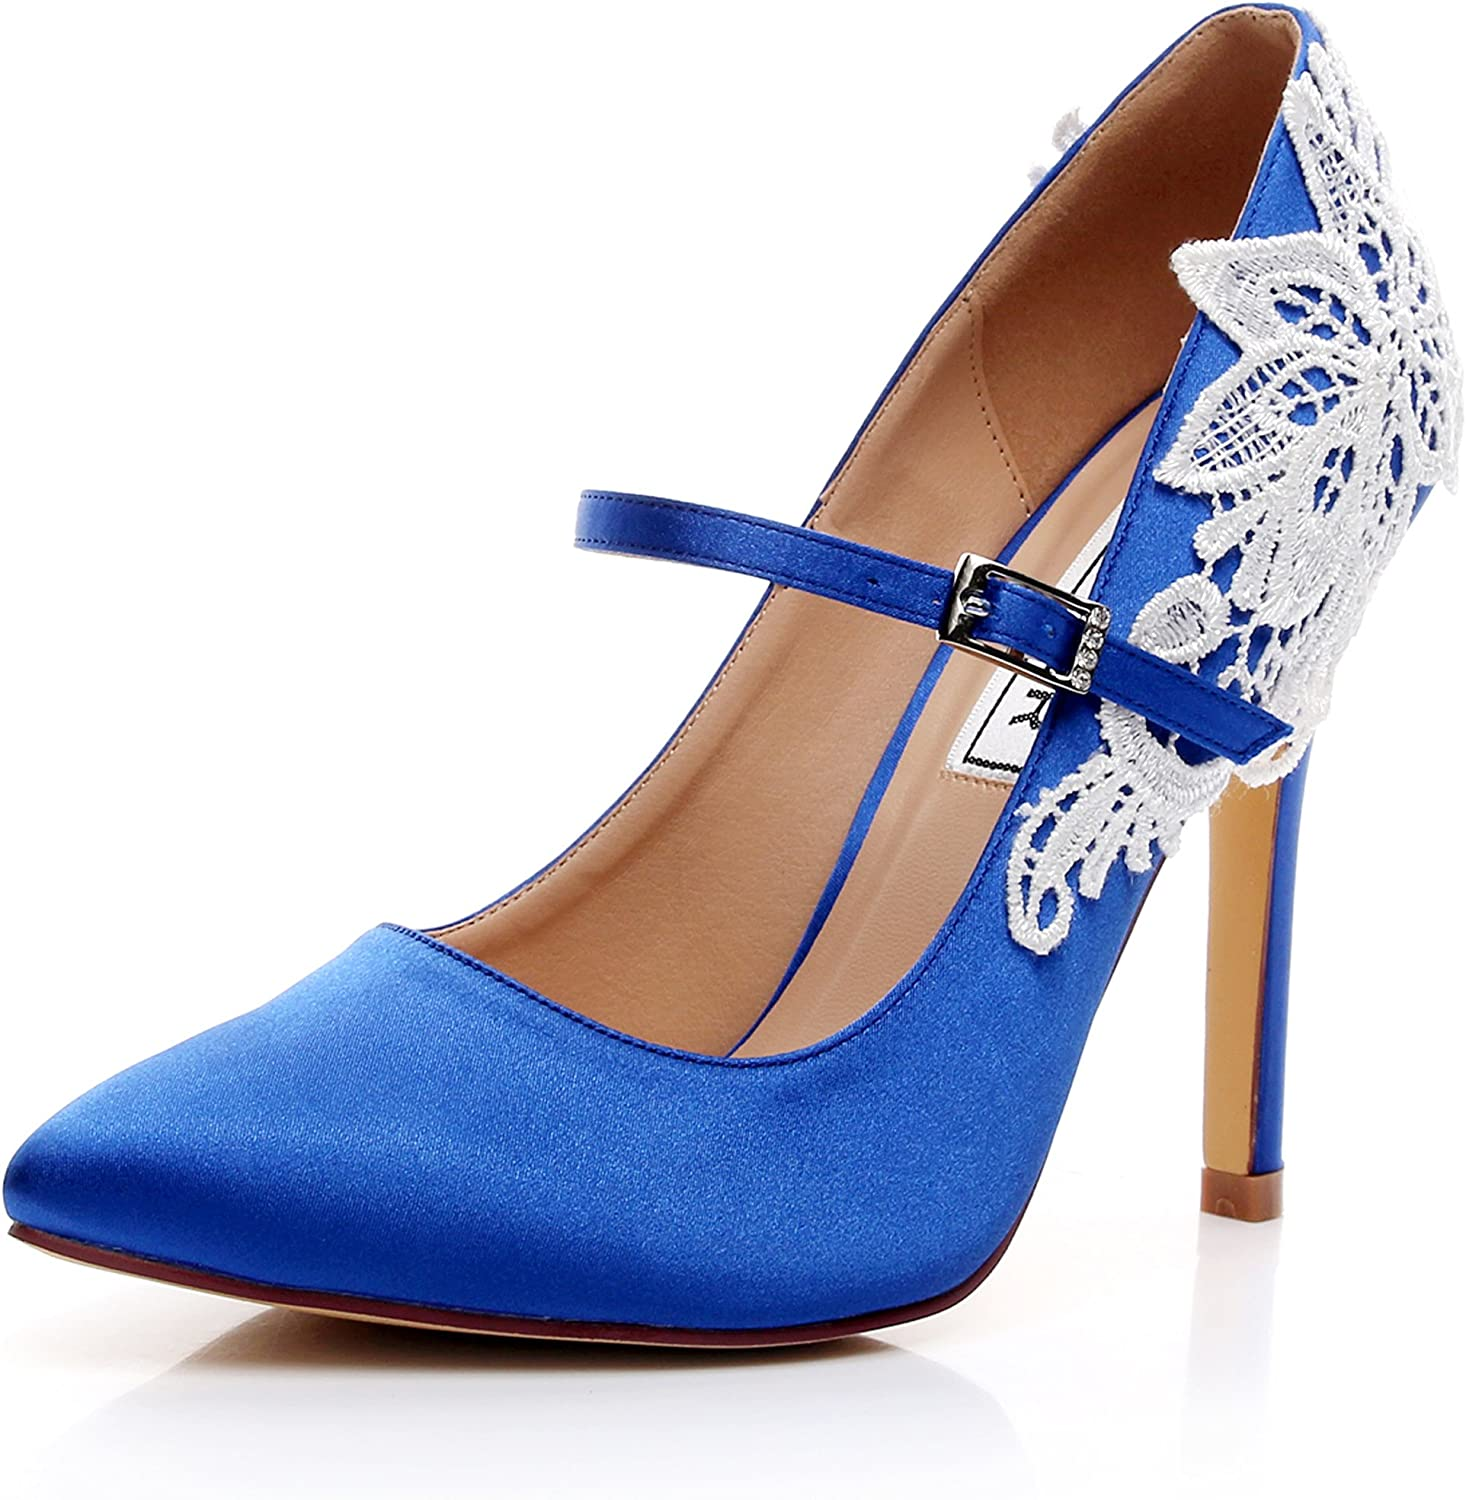 LUXVEER Satin Wedding shoes Sexy Women shoes with Lace Flowers Bridal shoes High Heel Evening shoes 4.5 inch RS-2064